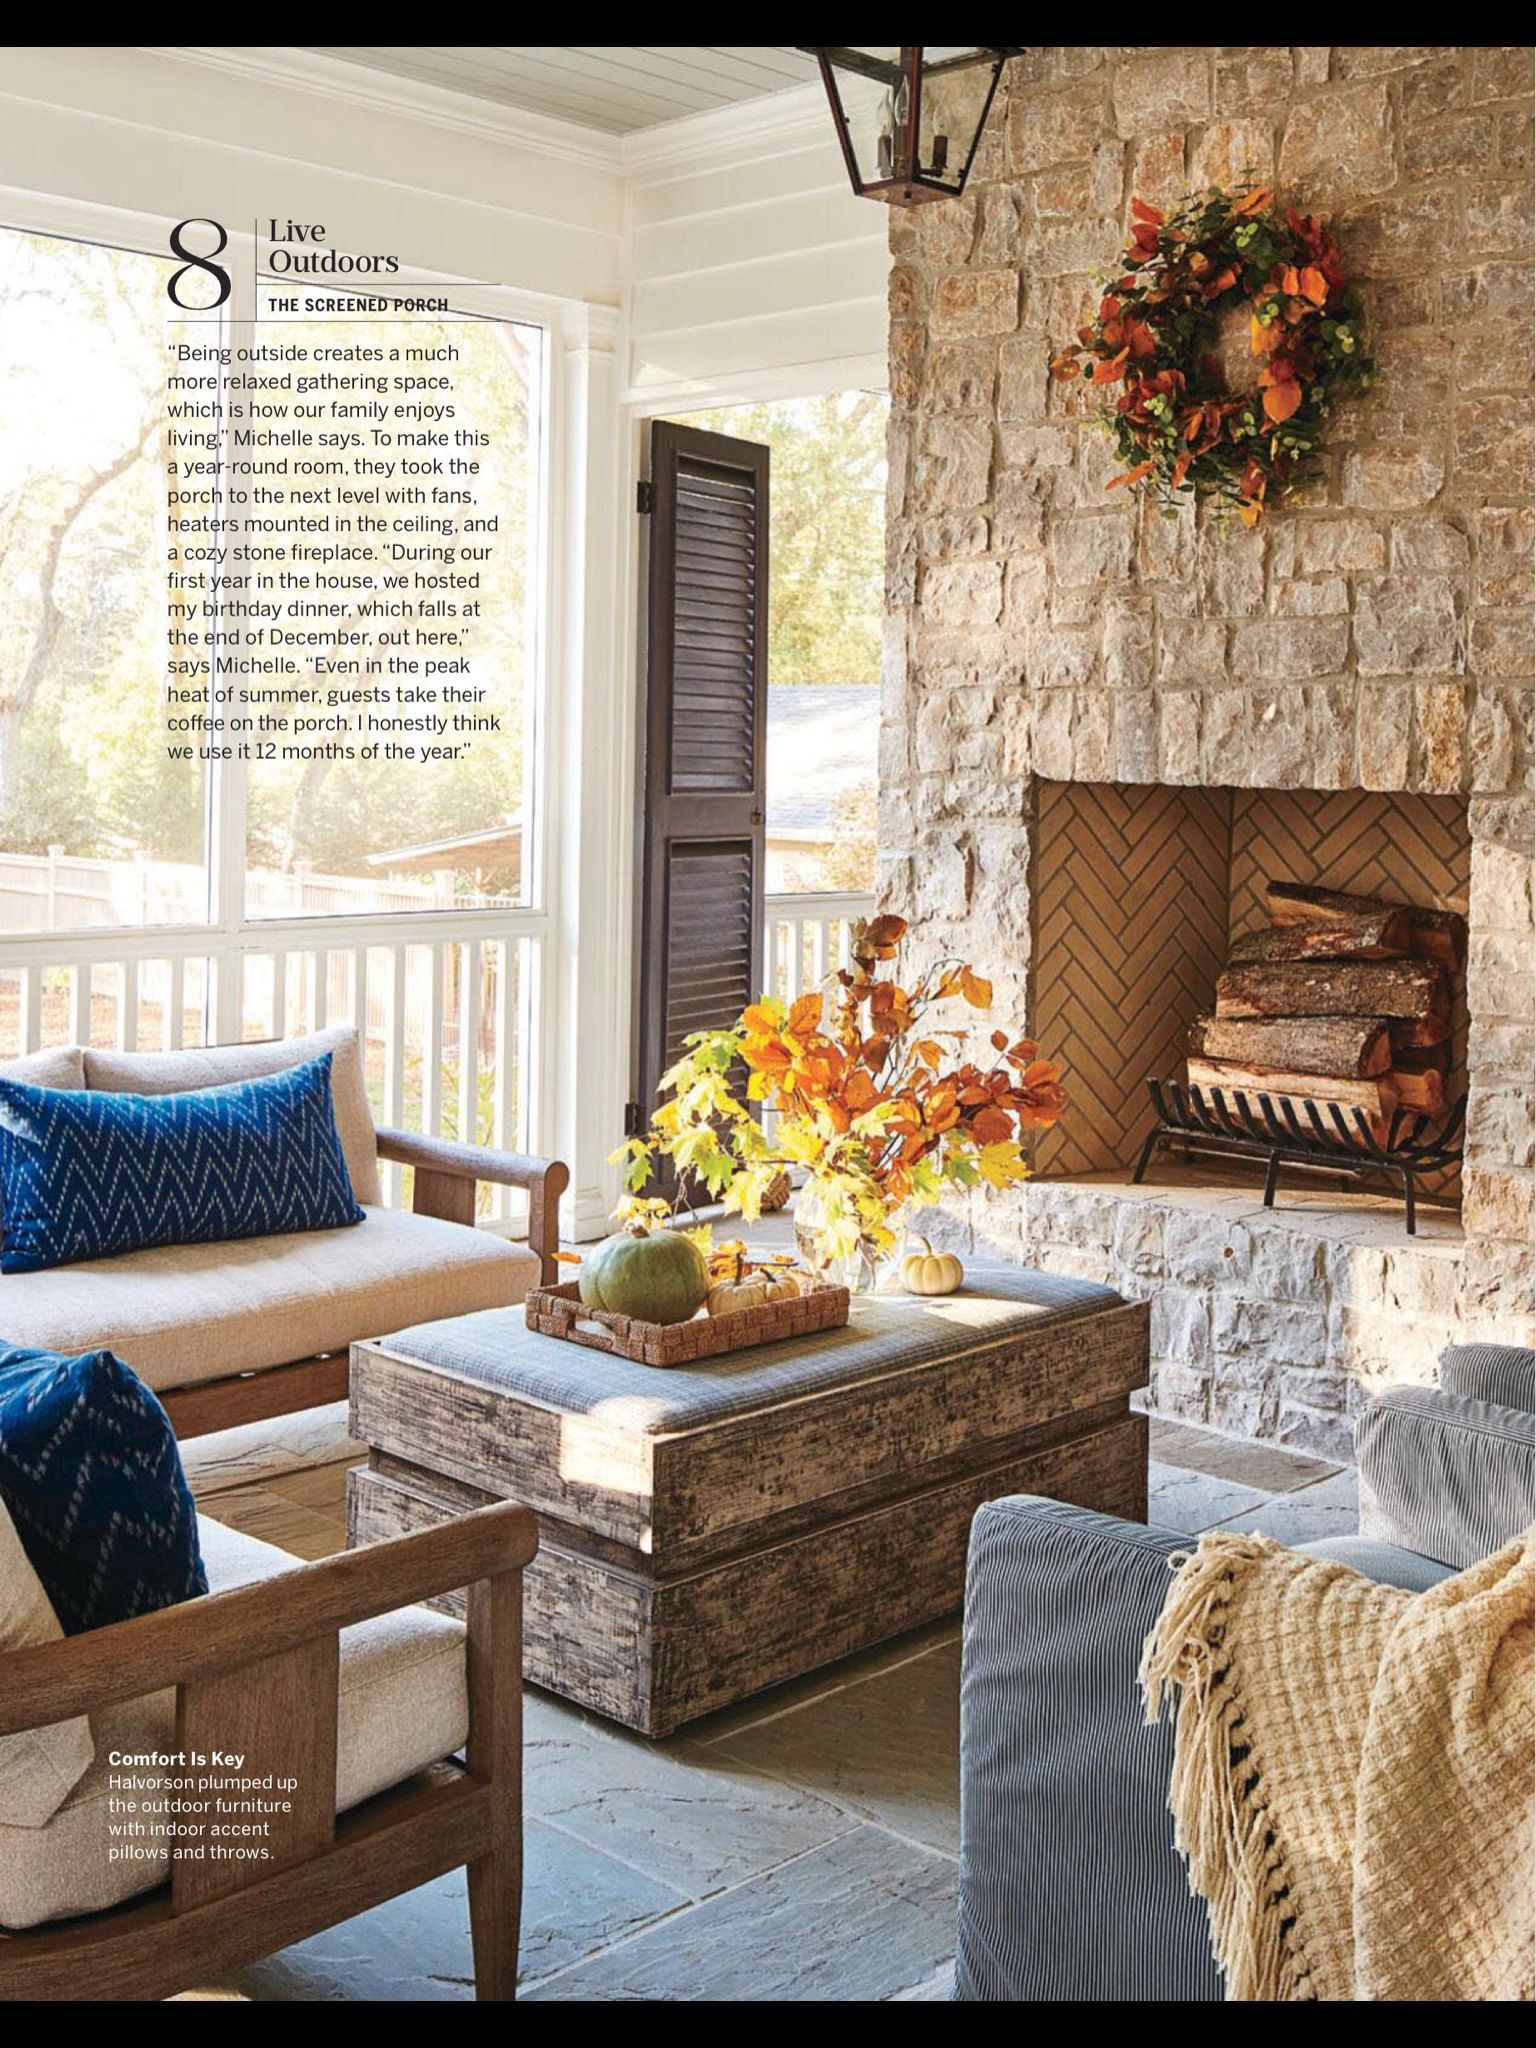 An Article From Southern Living In Textureu2014the Only App With Unlimited  Access To Magazines.